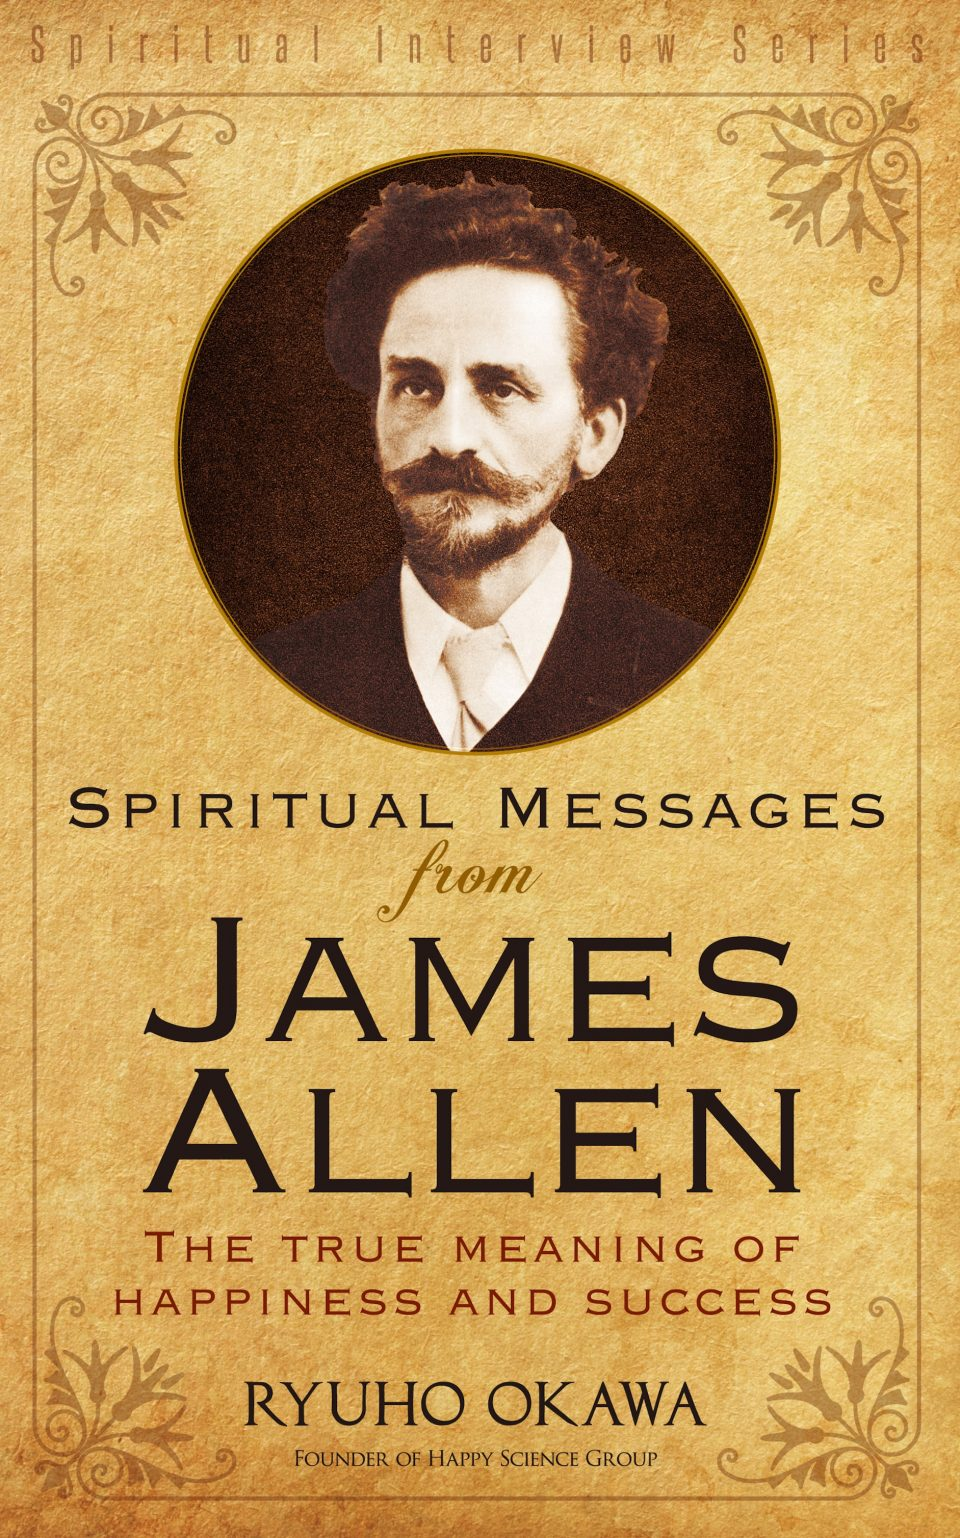 Spiritual Messages from James Allen: The True Meaning of Happiness and Success is out now!